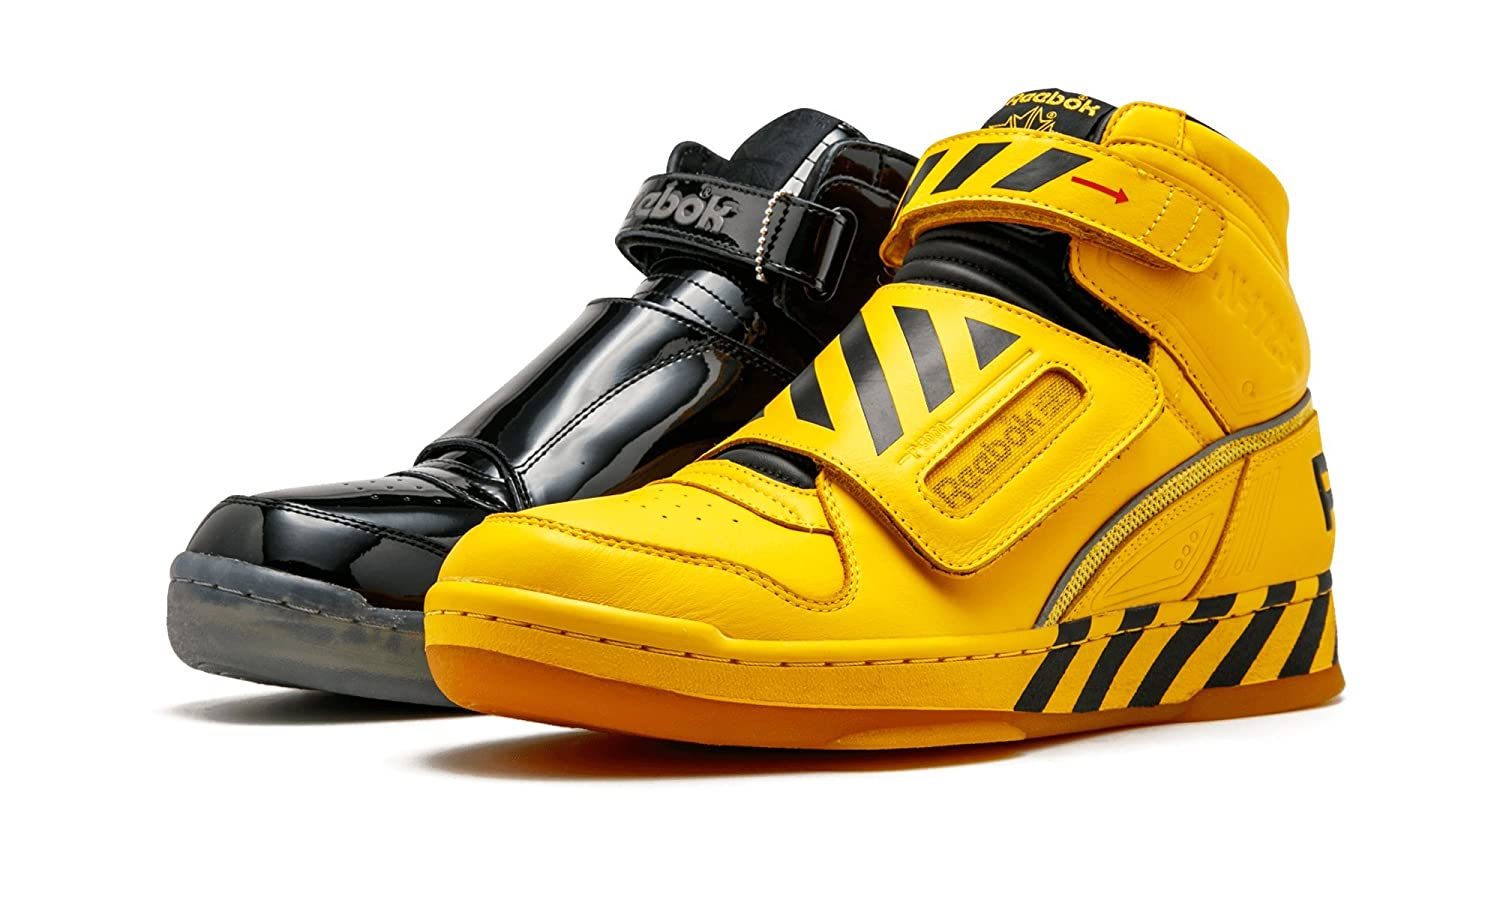 a9debcd3489 Reebok Alien Stomper MID PL - US 9.5: Amazon.co.uk: Shoes & Bags